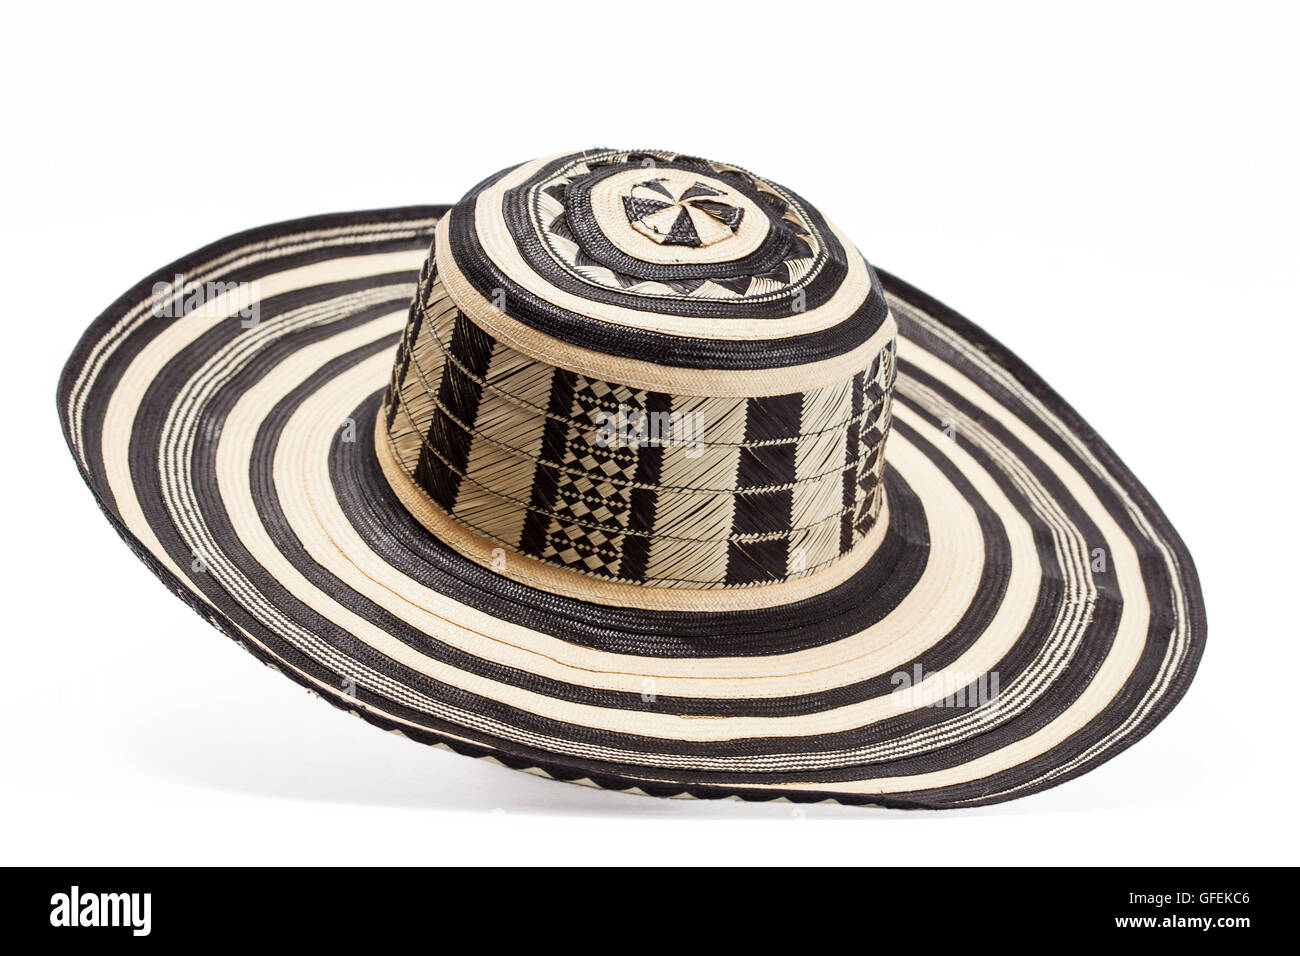 Traditional hat from Colombia   Sombrero vueltiao  - Stock Image 928064be696